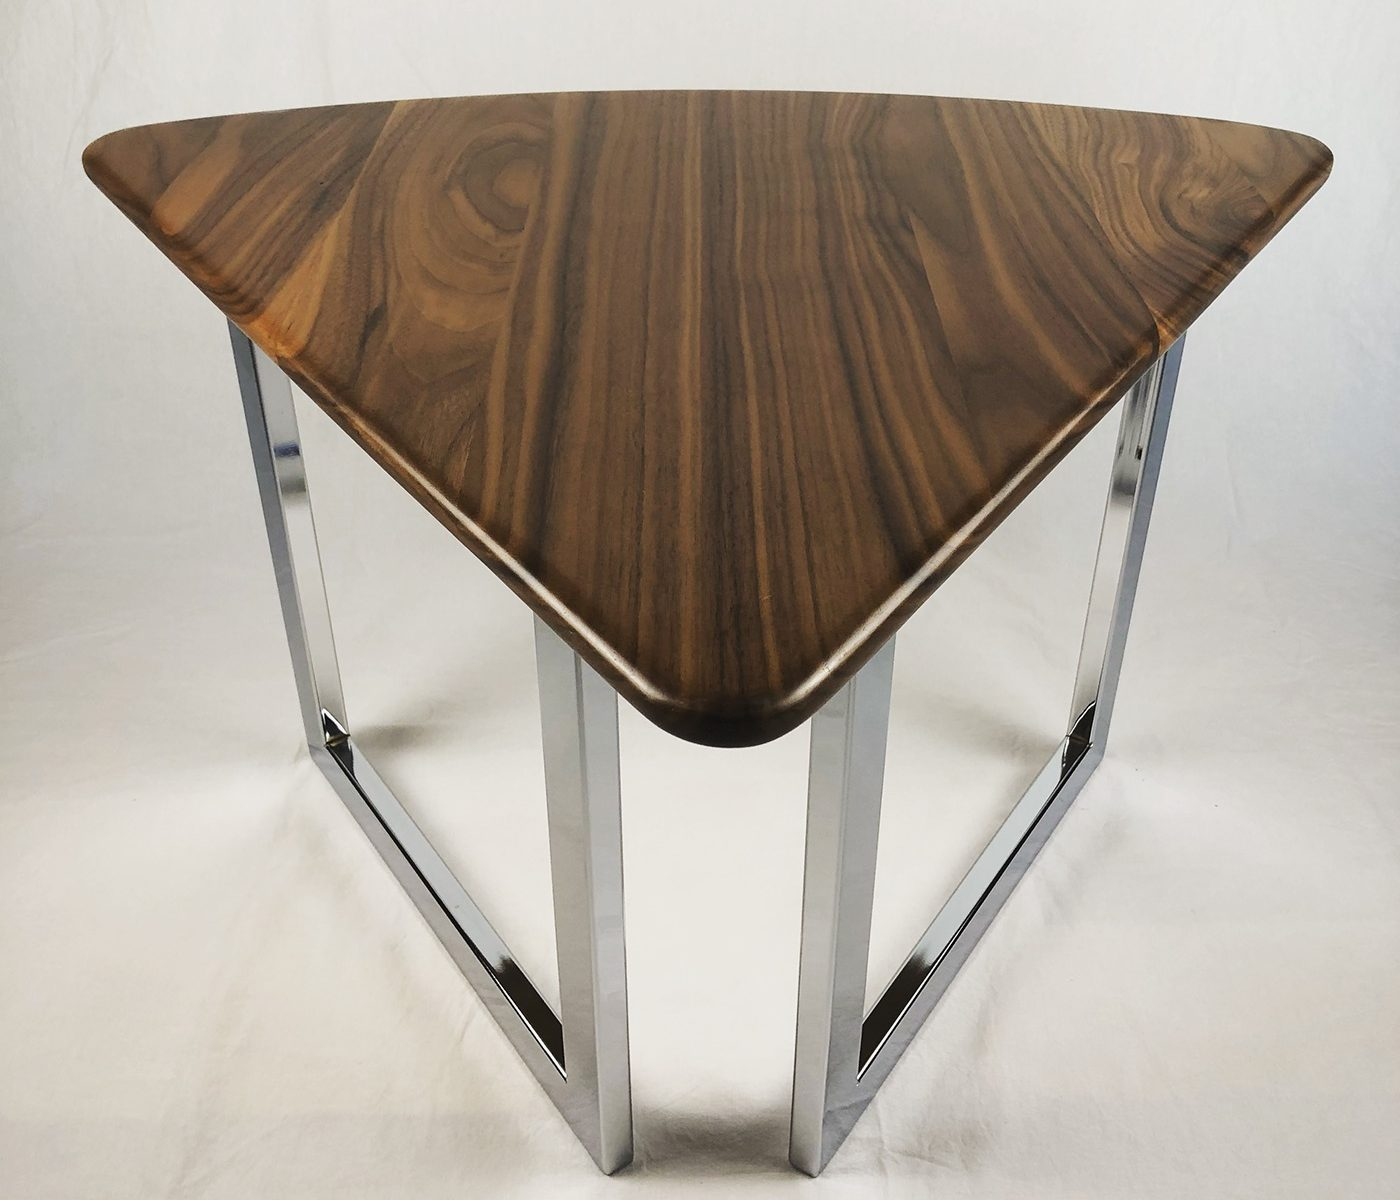 Table with chrome